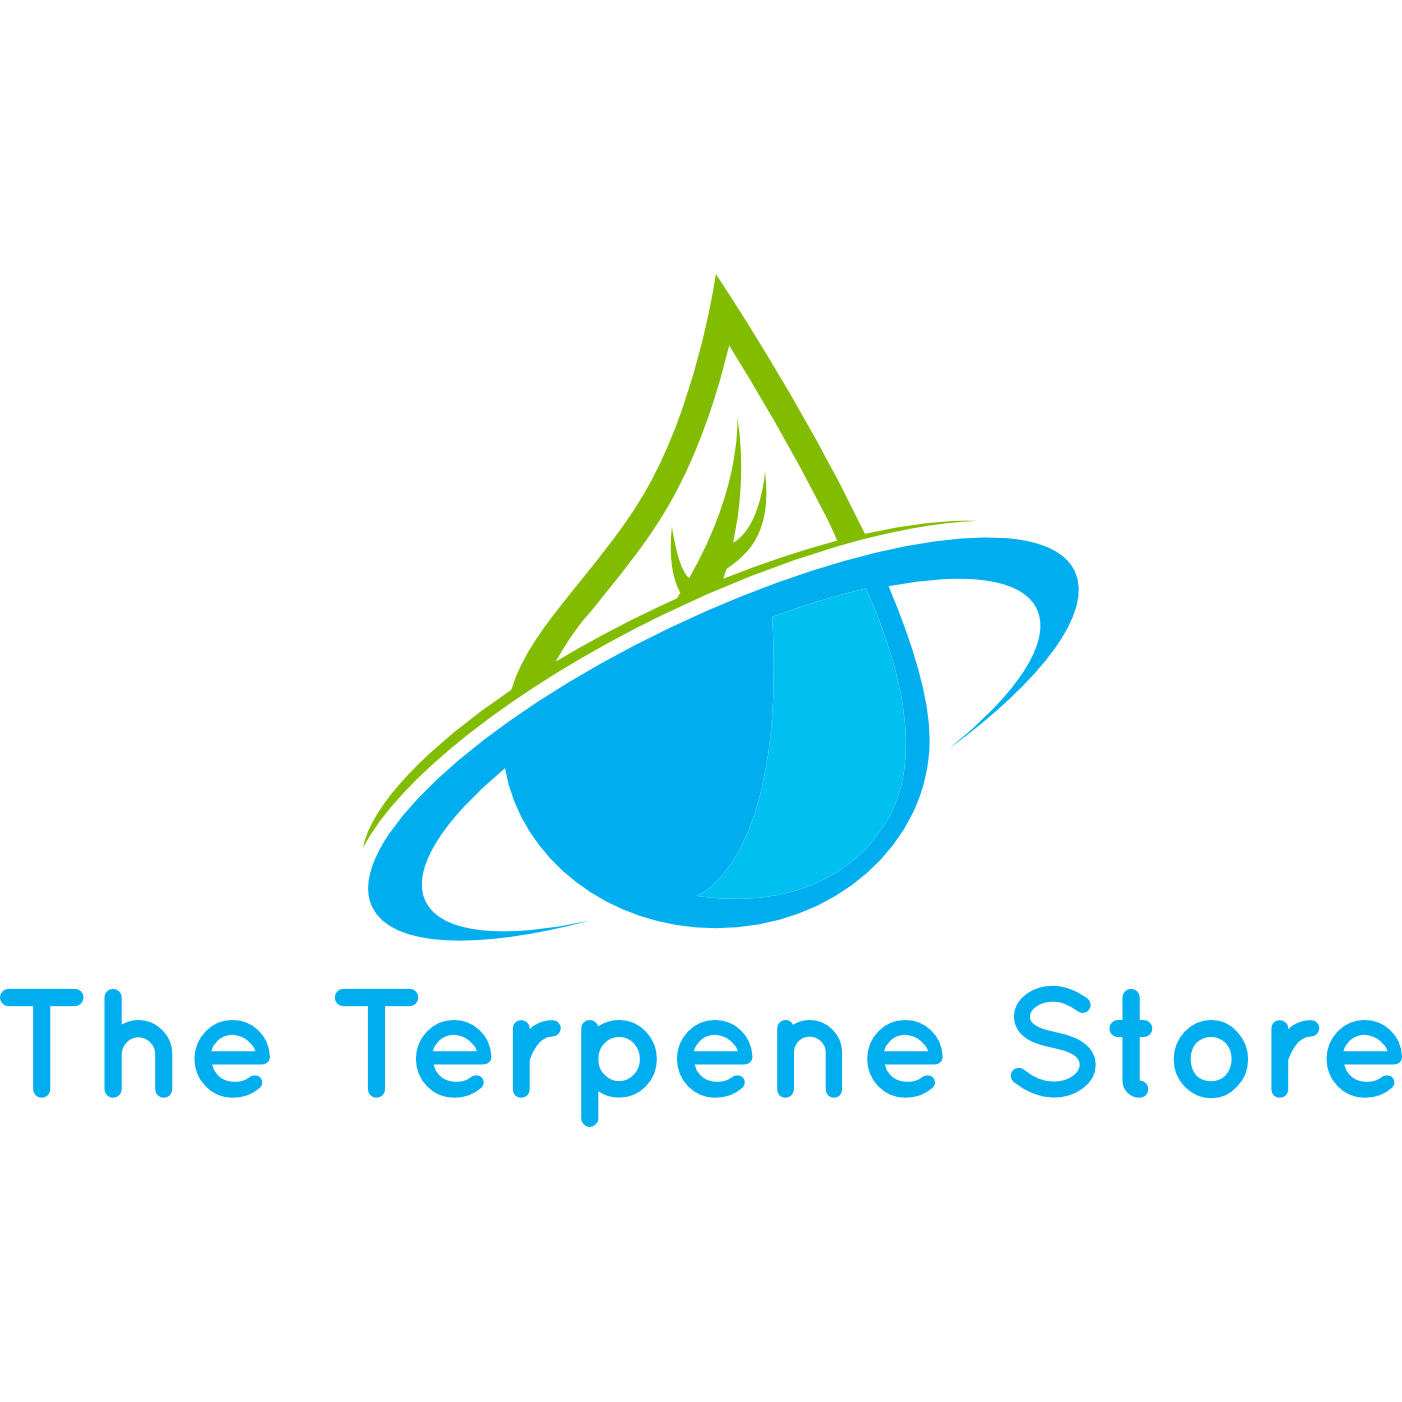 the terpene store coupons ventura ca near me 8coupons